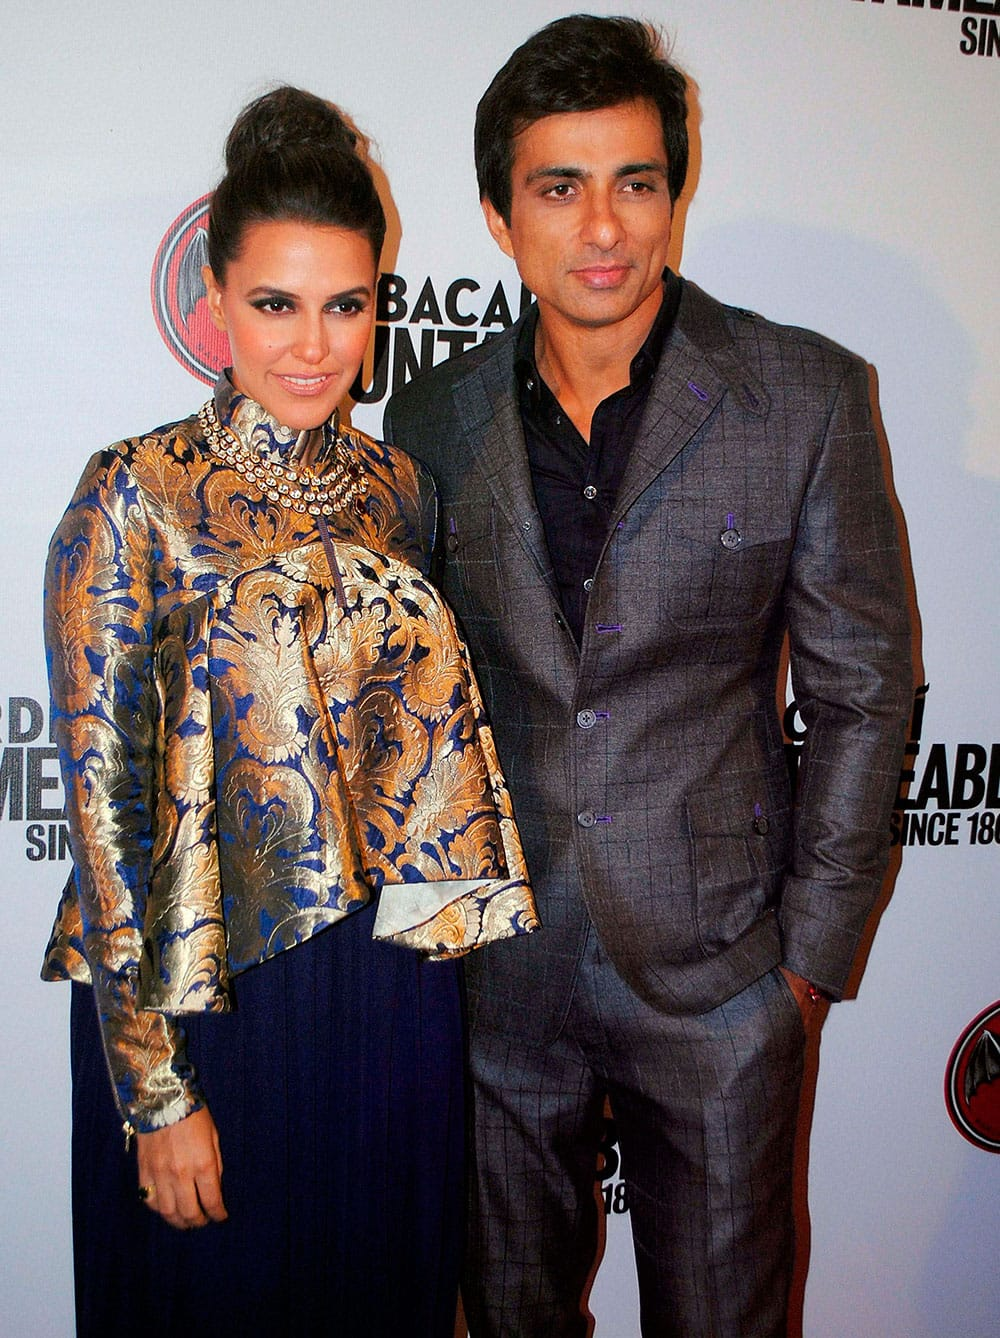 Bollywood actors Neha Dhupia and Sonu Sood participate in an event at Kingdom of Dreams in Gurgaon.